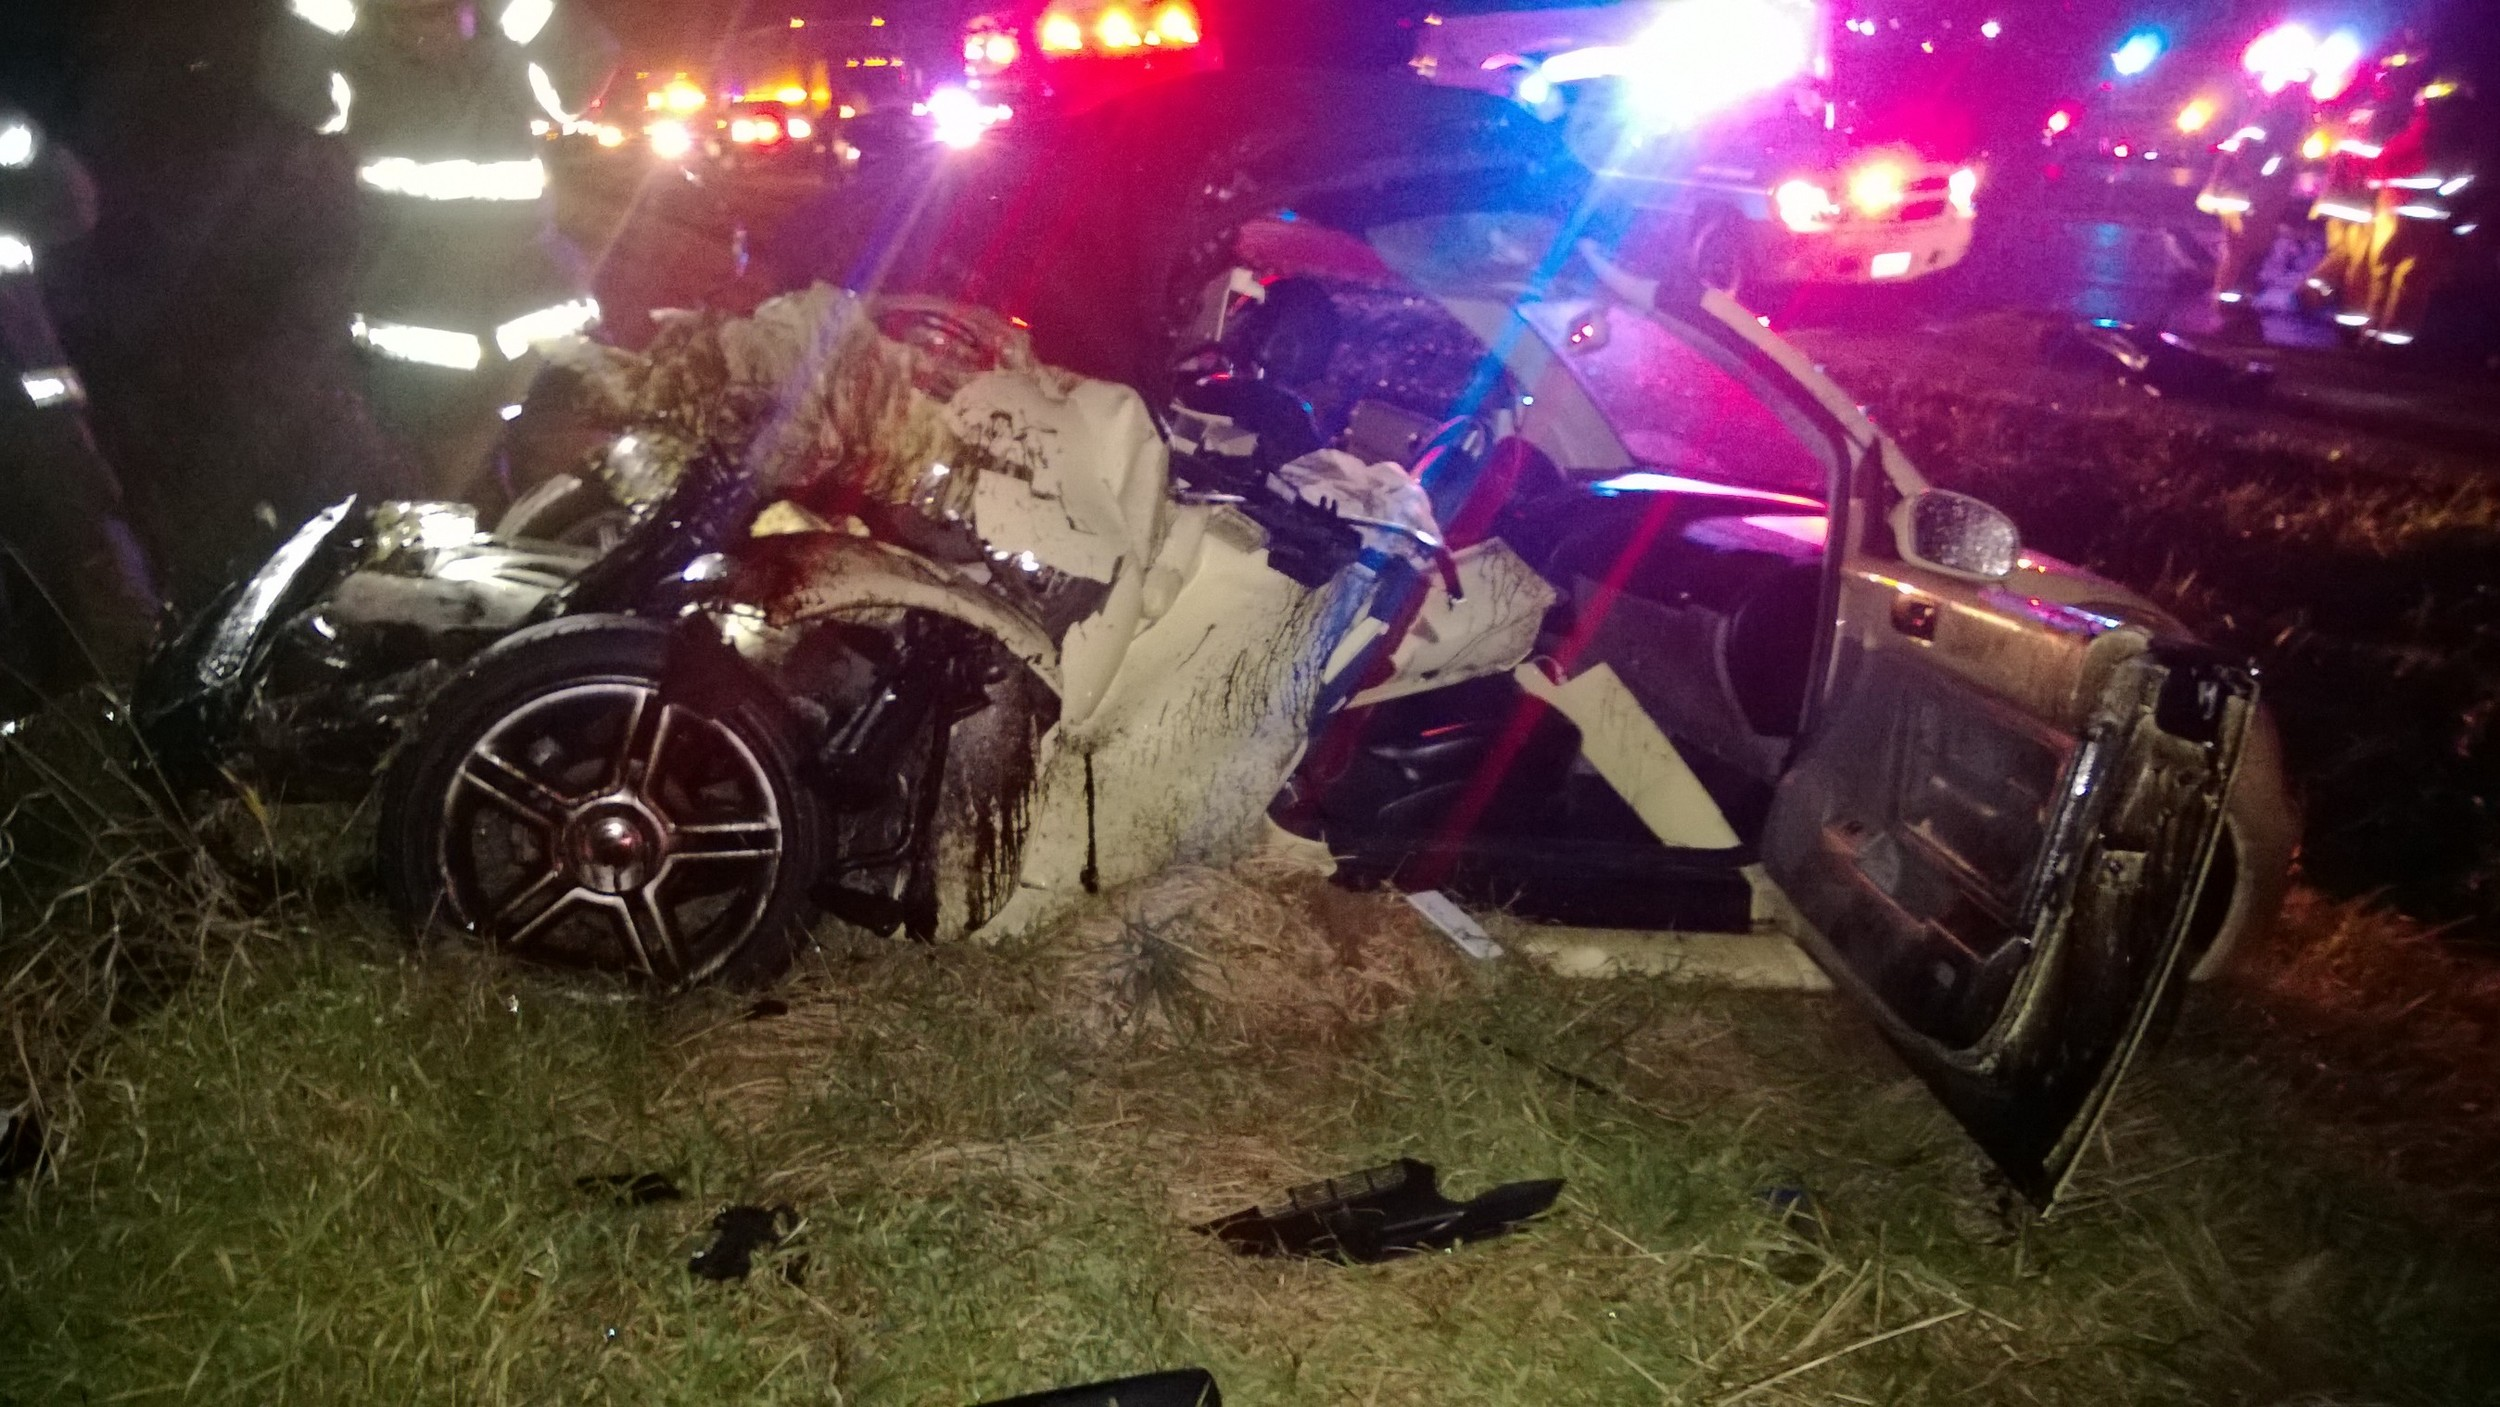 This was all that was left of a 2004 Volkswagen that was struck by a semi truck during a major traffic accident on Interstate 29 north of Platte City Monday night. The driver of the vehicle was seriously injured and transported to an area hospital.